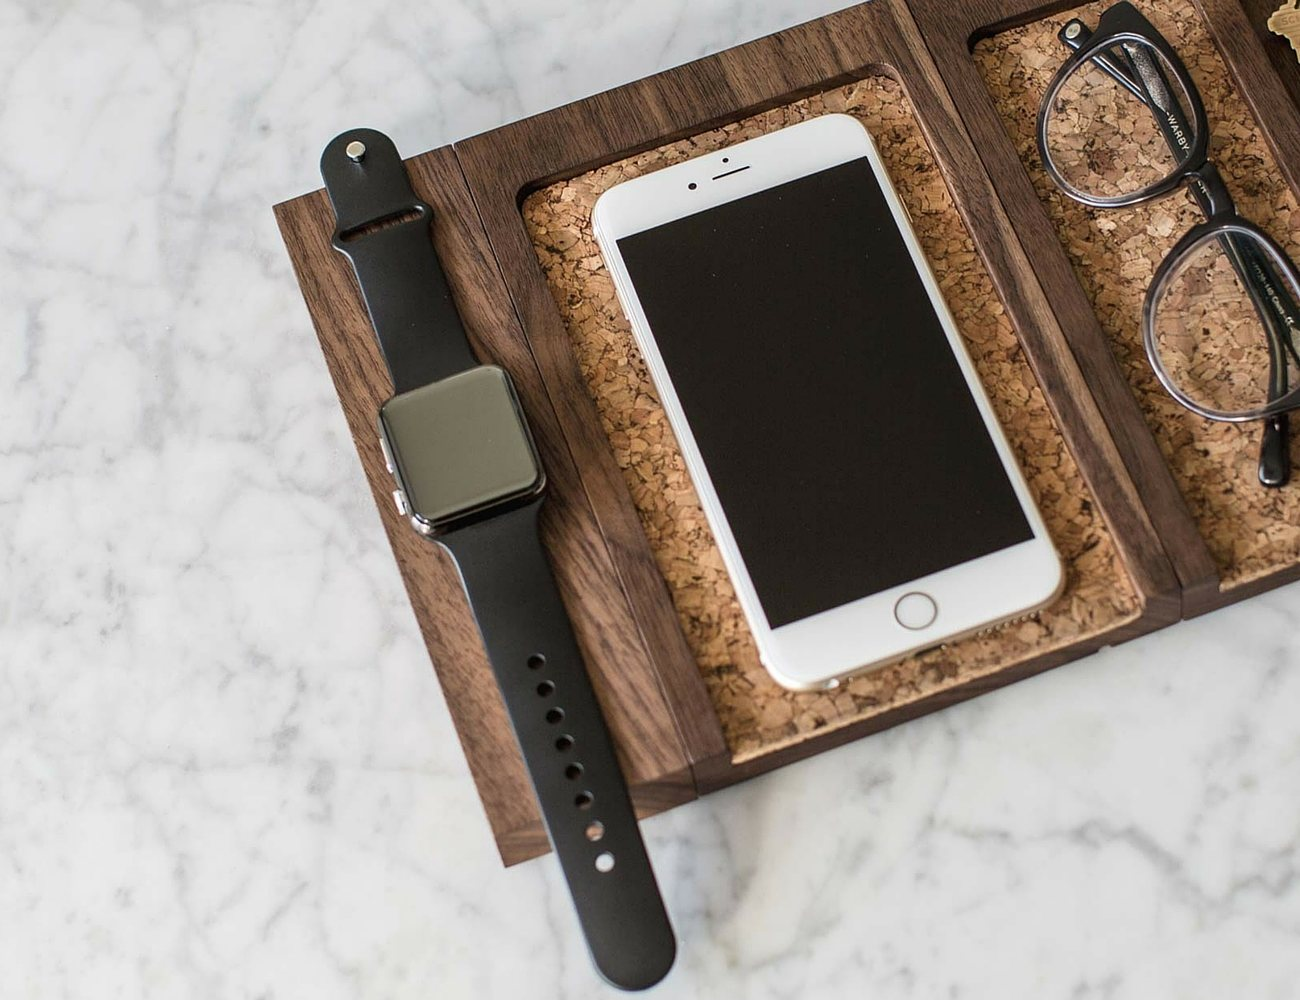 composure-charger-dock-for-apple-watch-by-rest-01